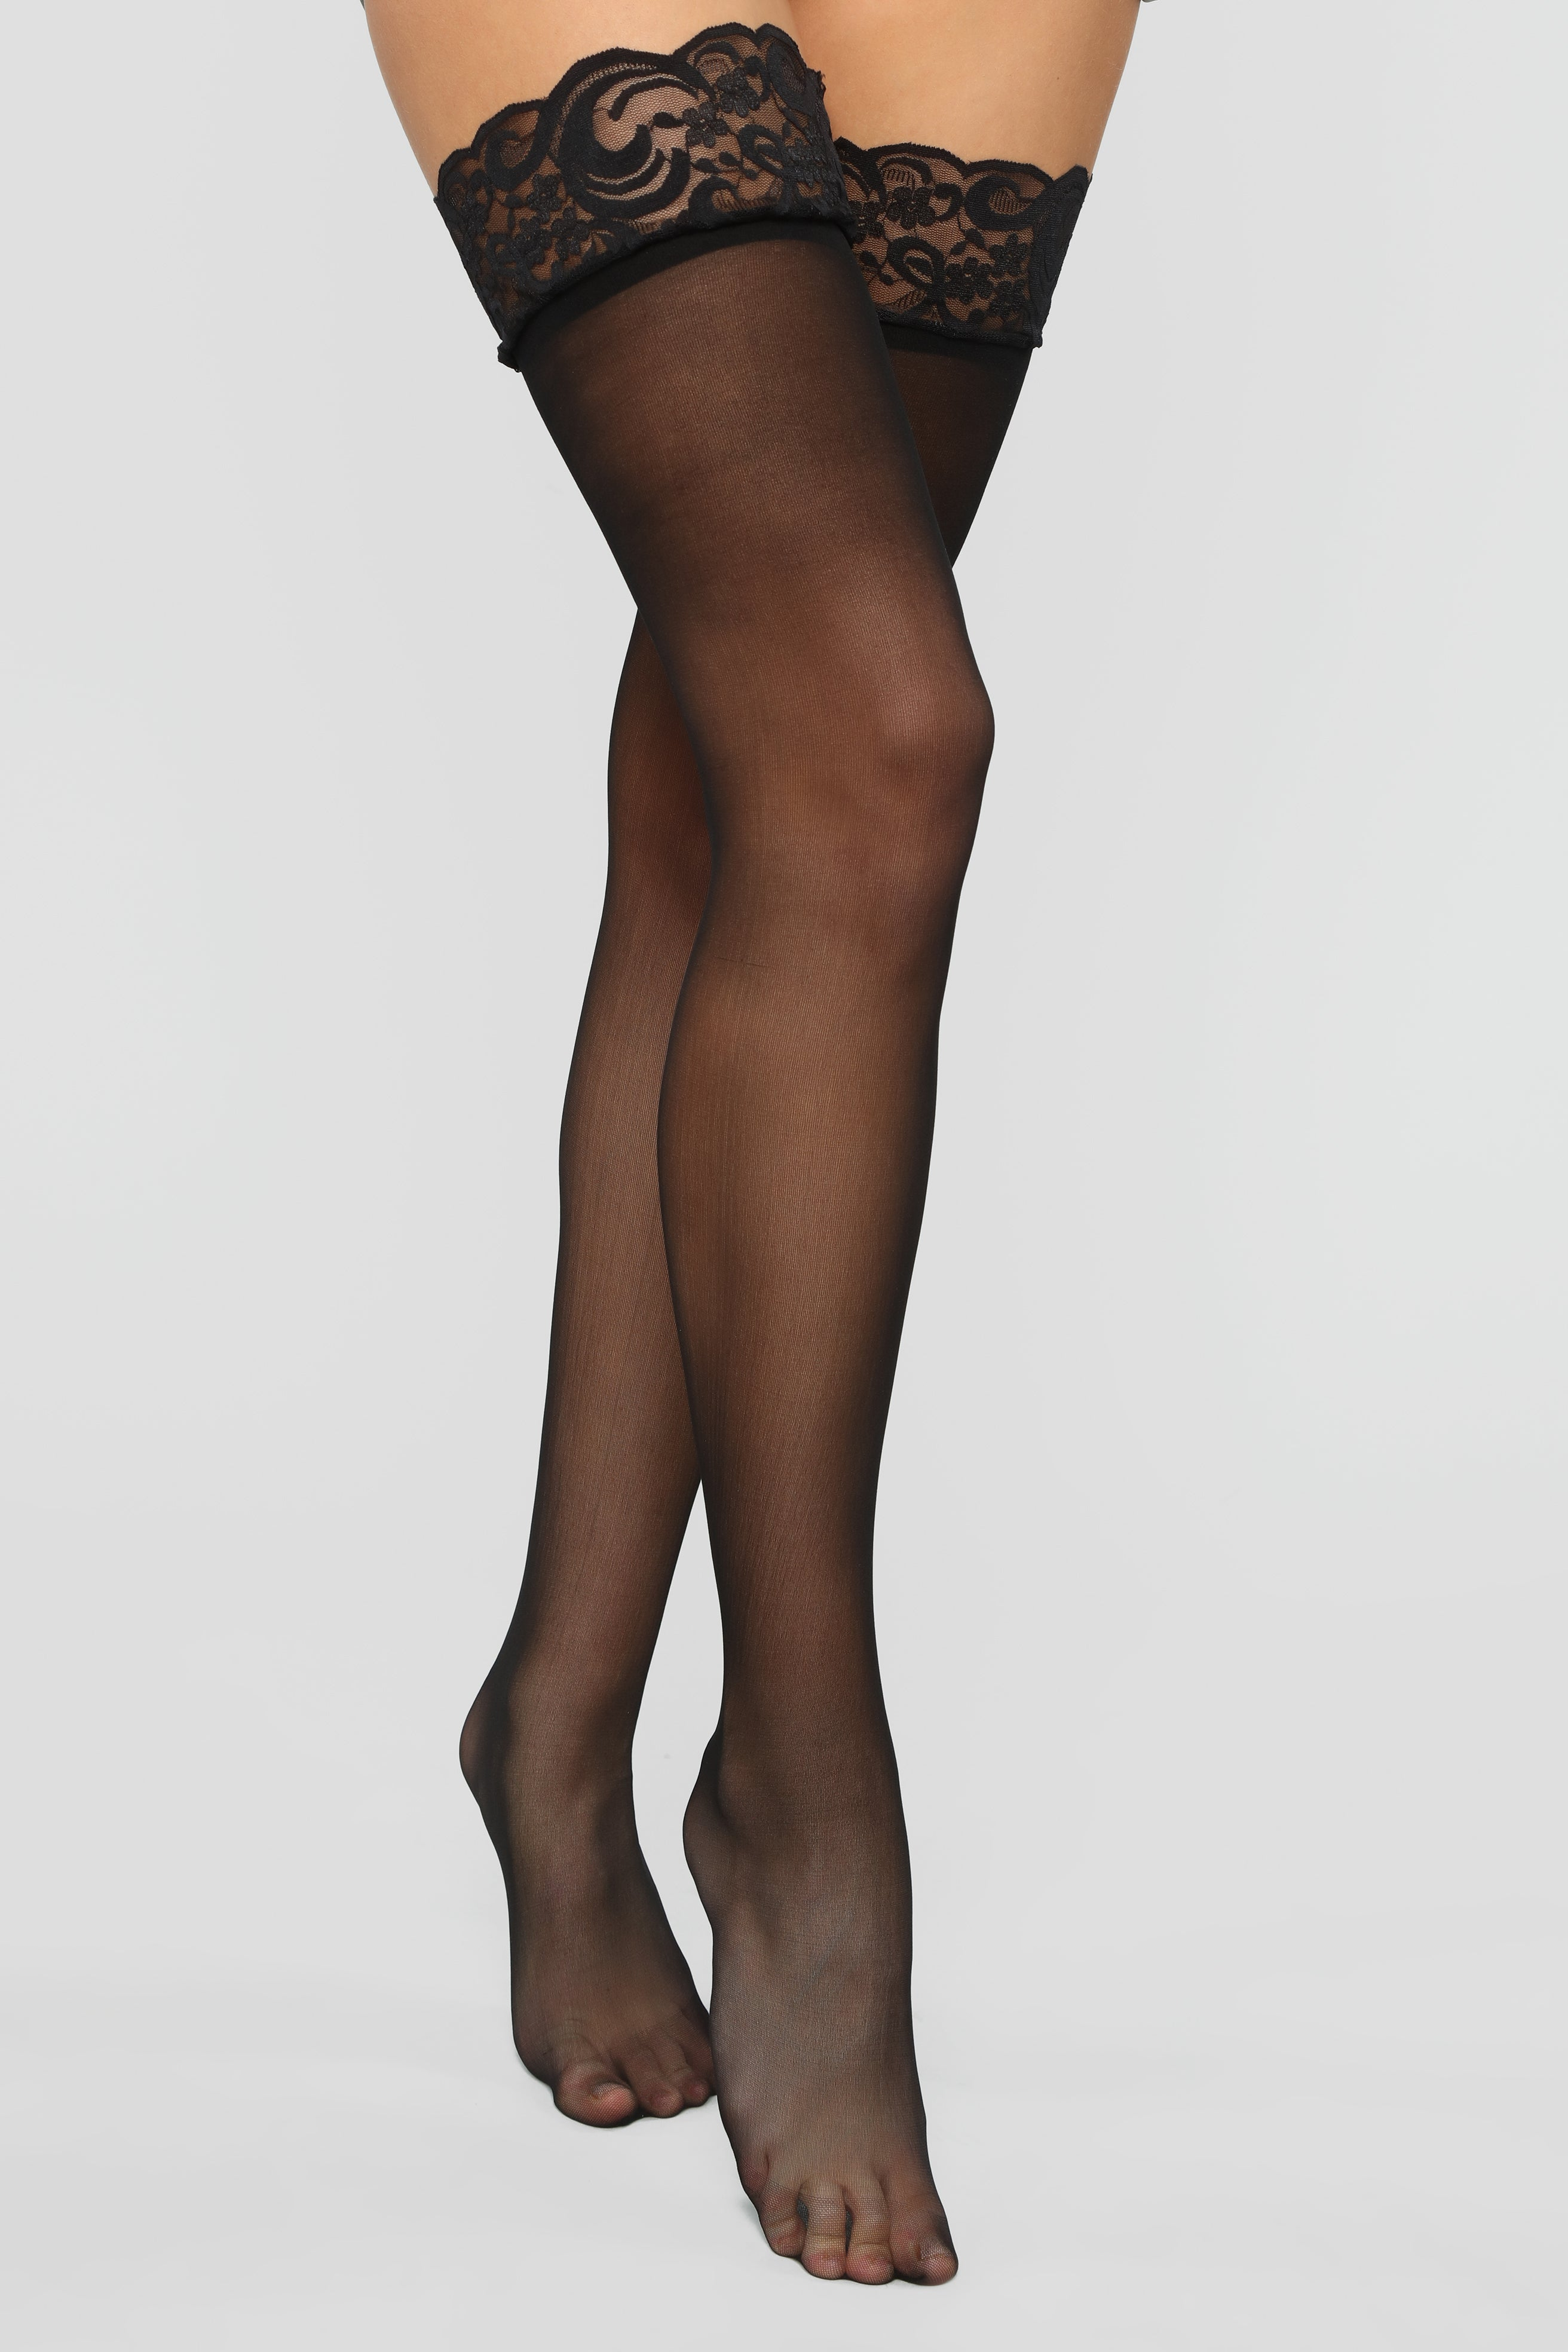 211e53c7d ... Thigh High Stockings - Black. STYLED ON INSTAGRAM